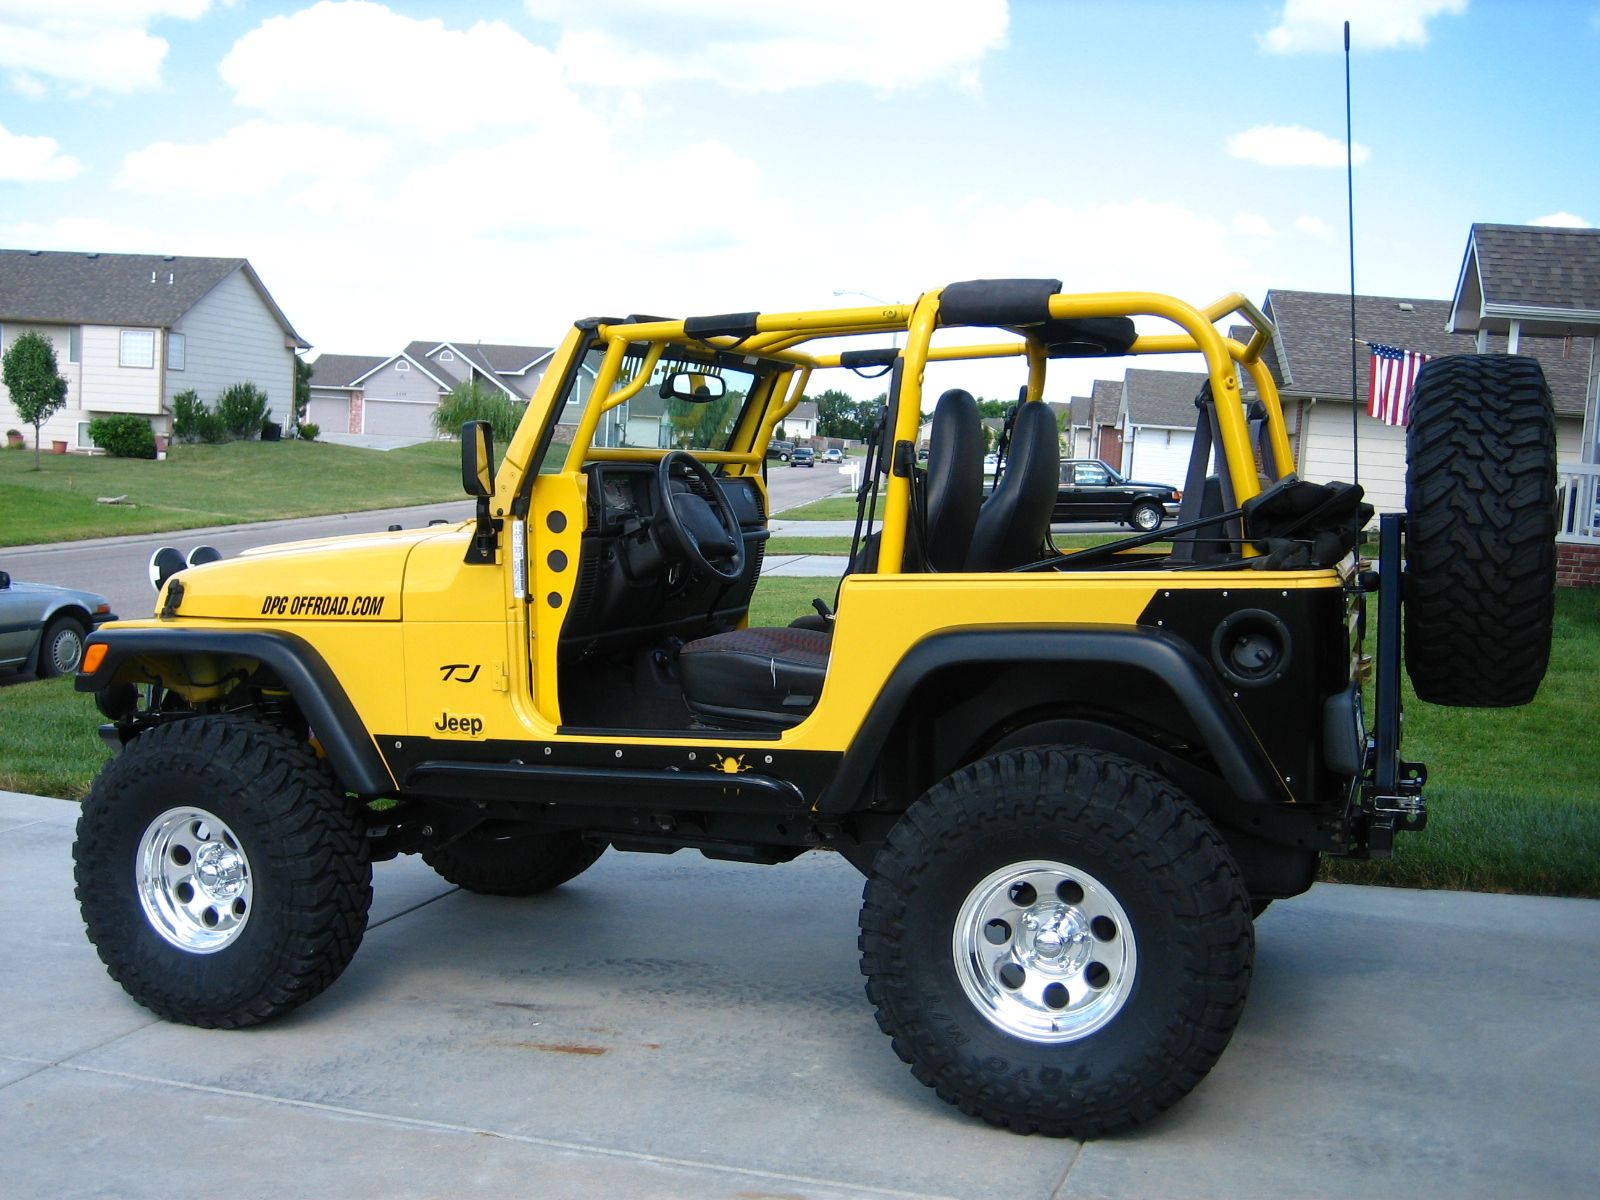 Jeeps July 05 With Cage Installed Yellow Jeep Wrangler